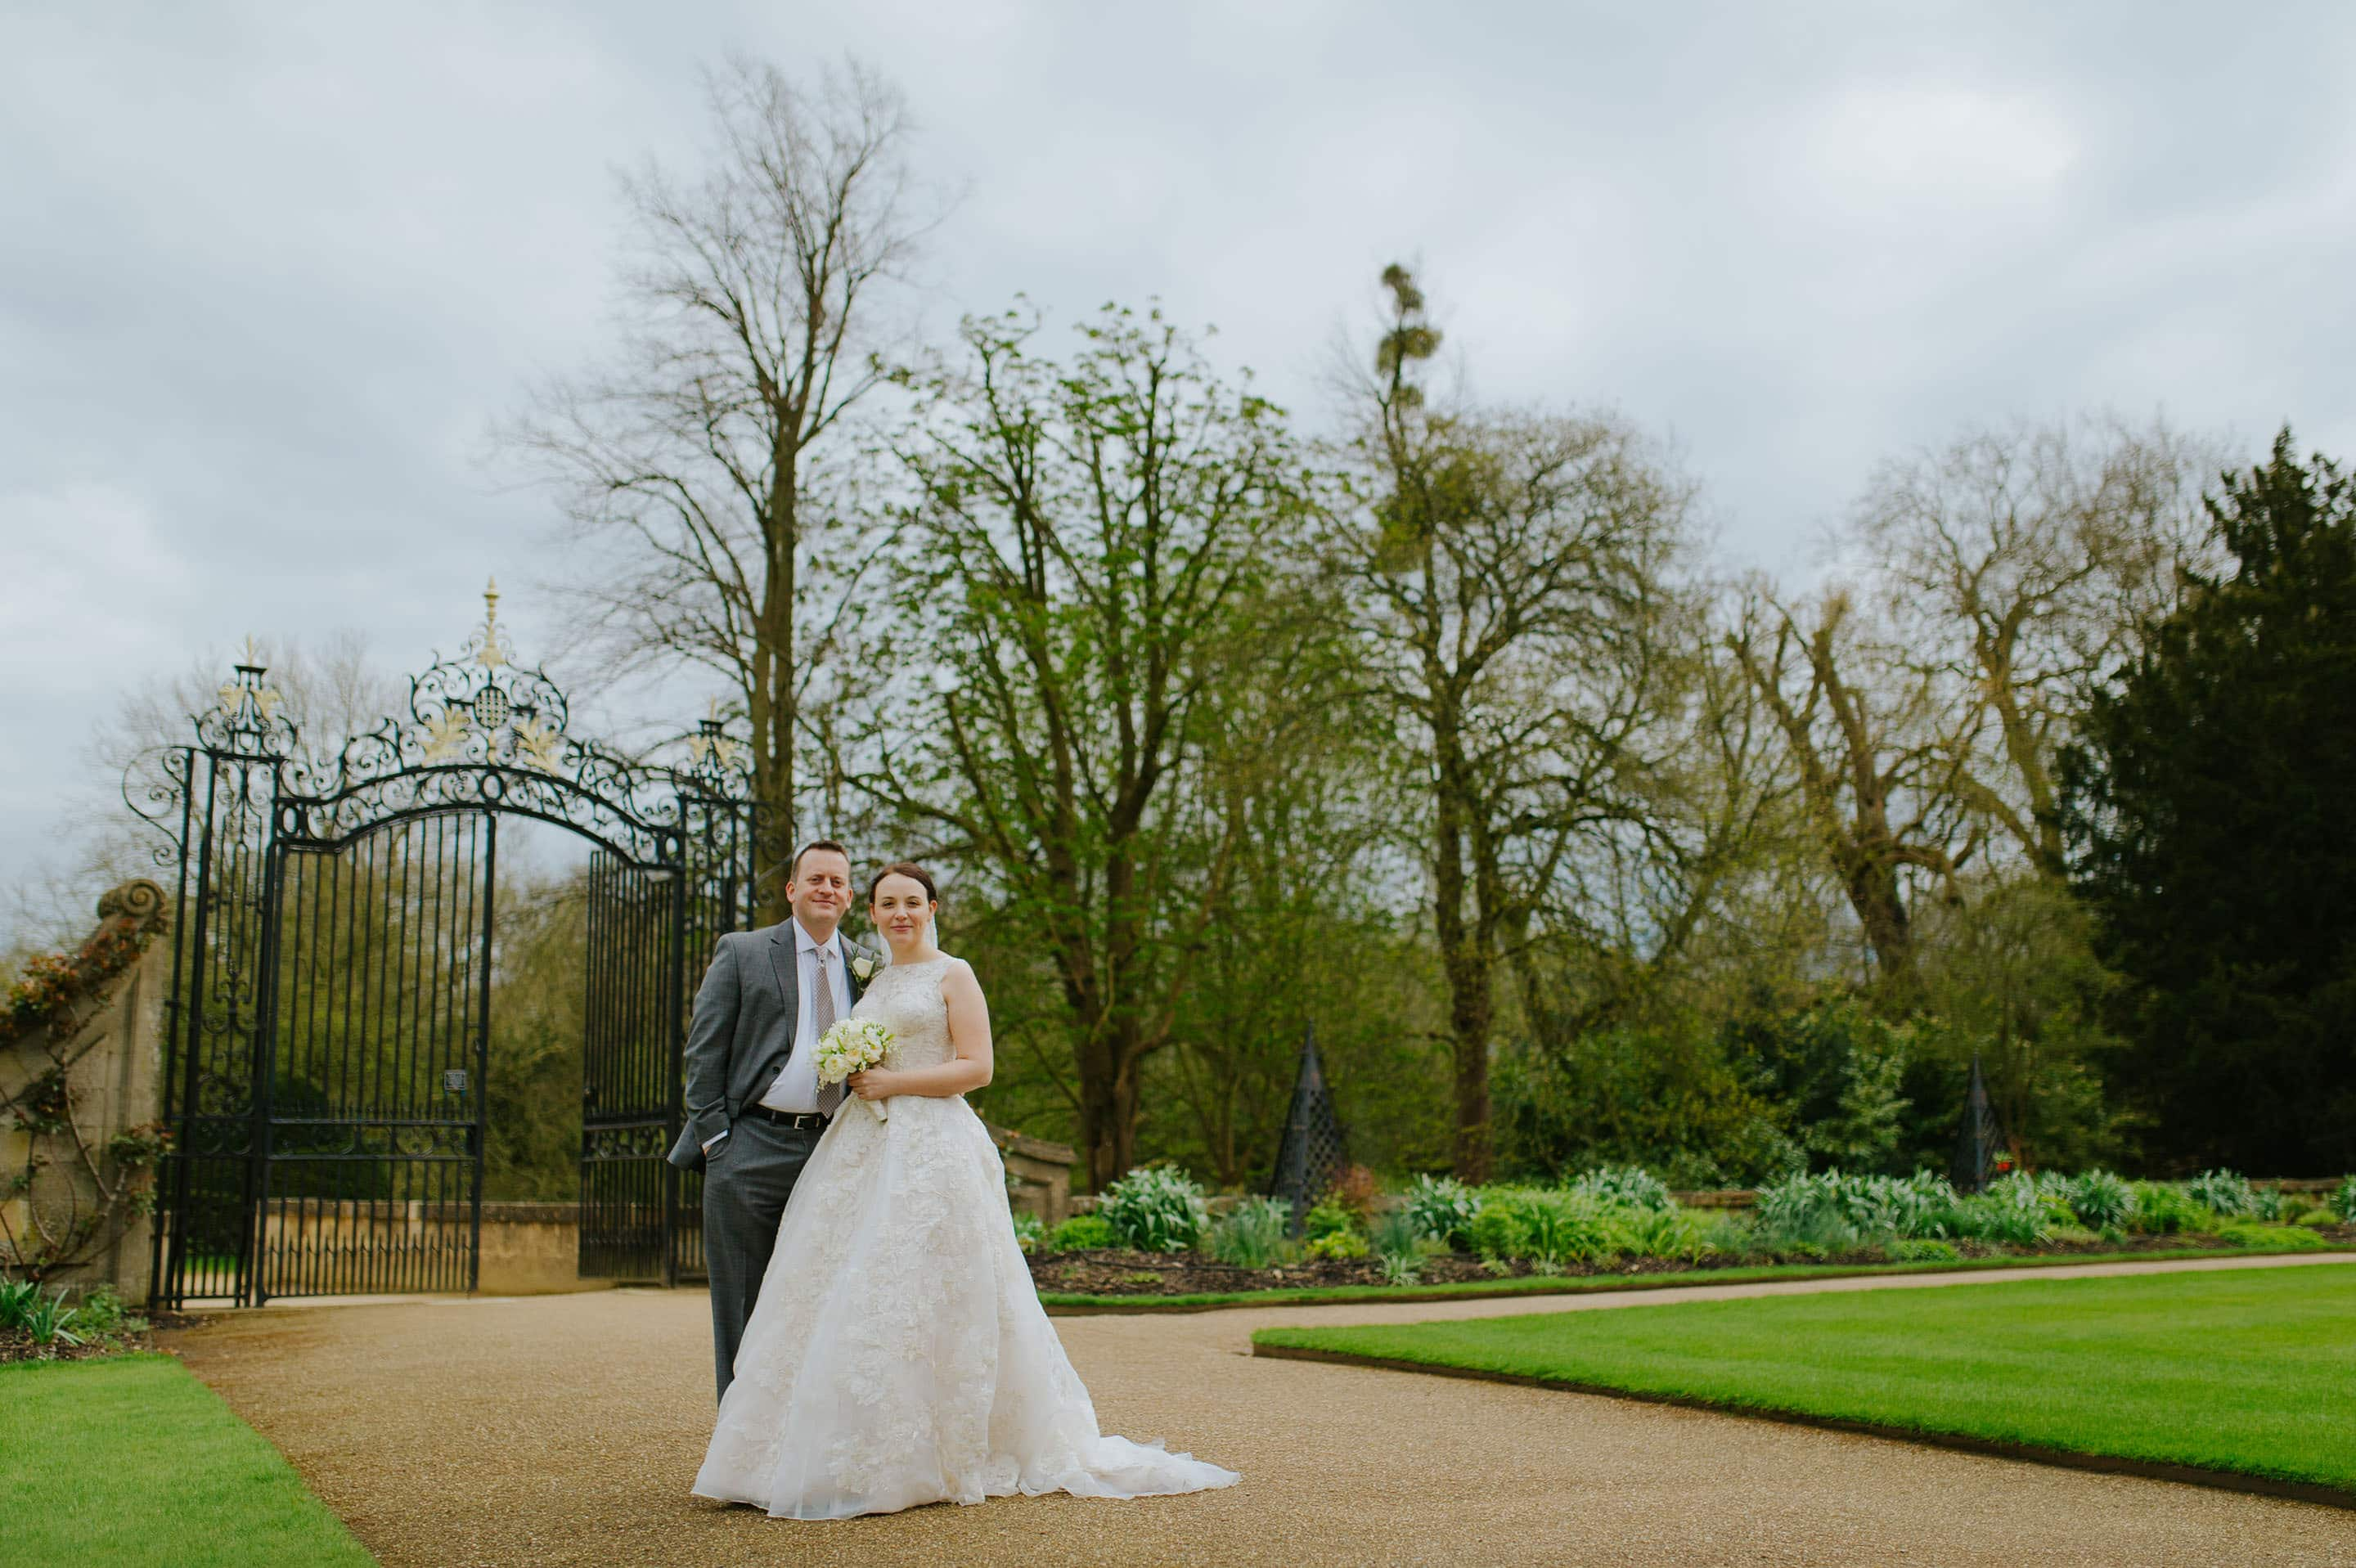 Tommie + Virginia | Wedding at Magdalen College in Oxford 25